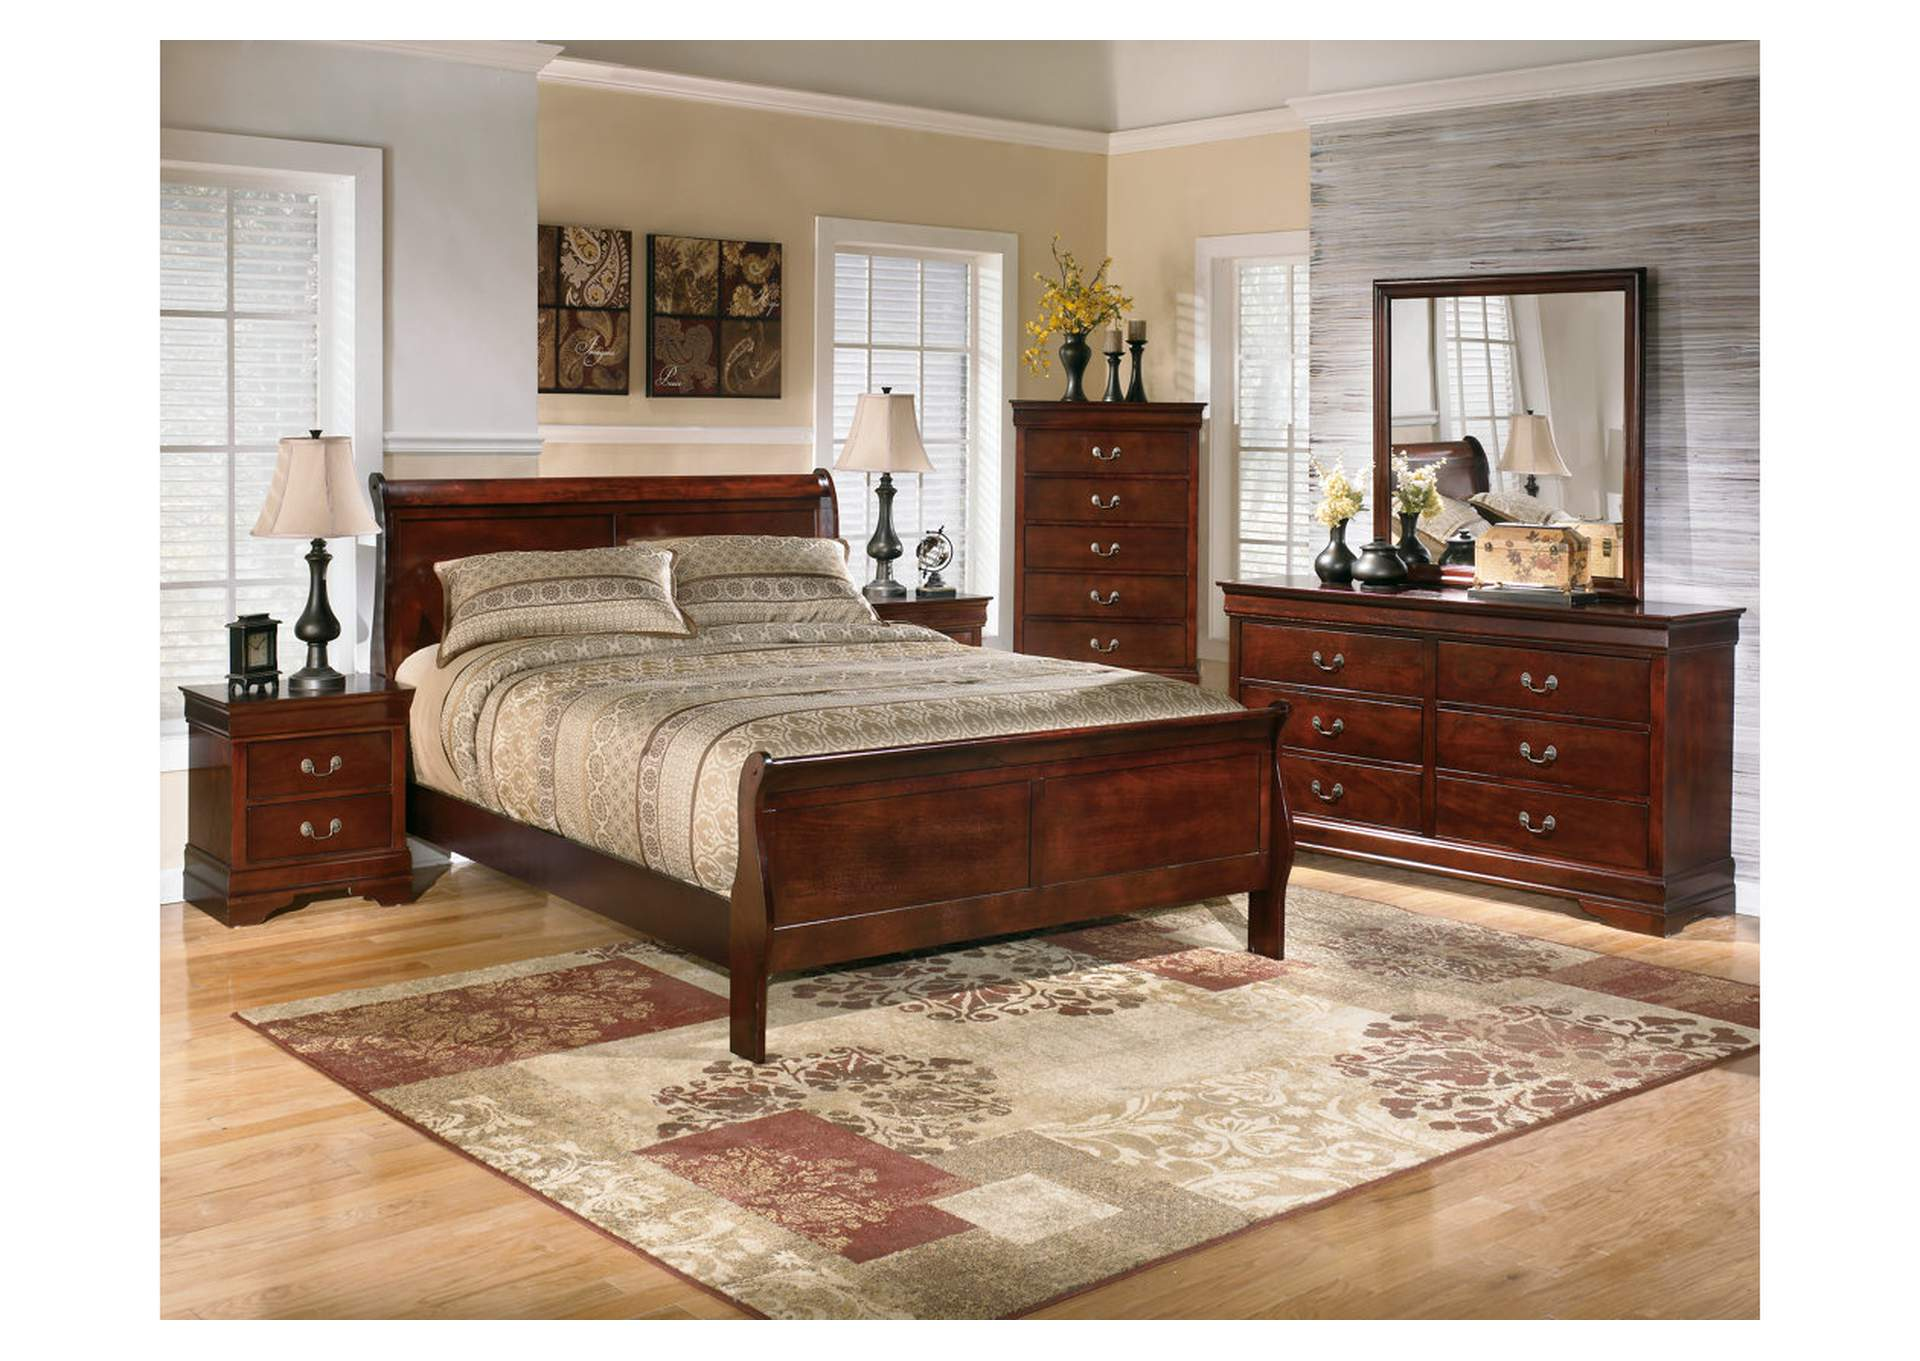 Alisdair Queen Sleigh Bed w/Dresser, Mirror, Drawer Chest & Nightstand,Signature Design by Ashley